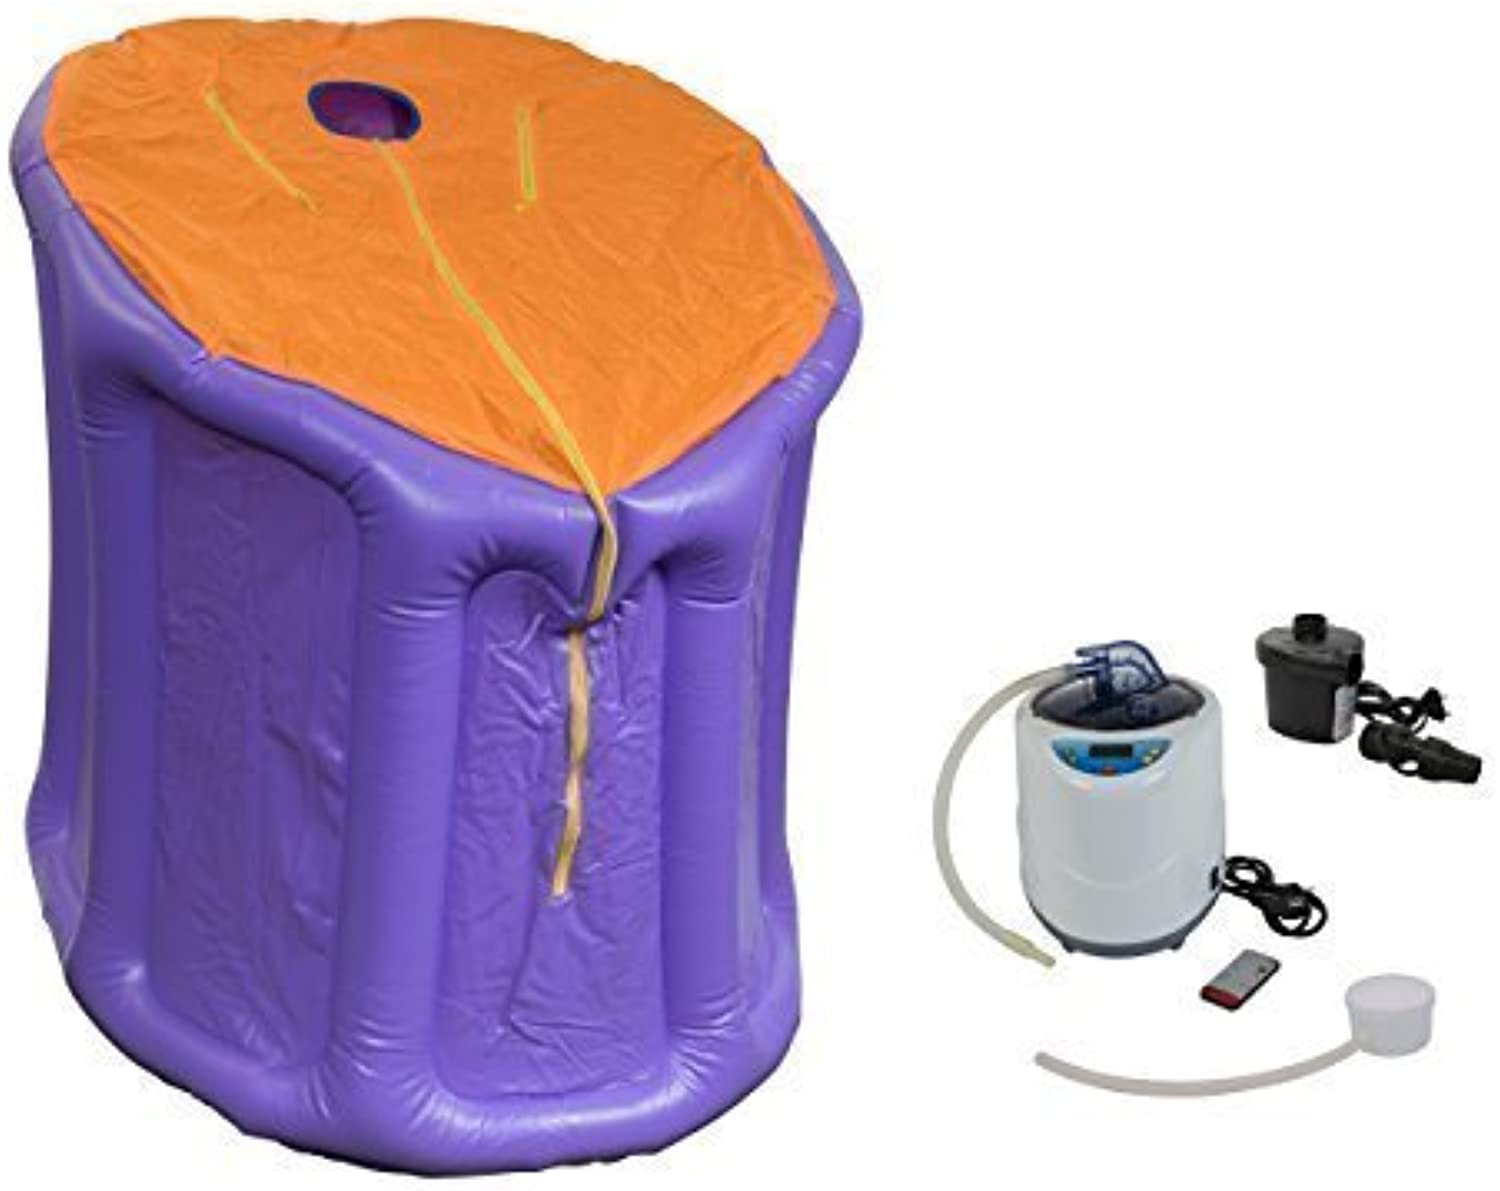 Mini steam Sauna Svedana Purple orange with electronically Controlled steam Boiler 2 litres, 1000 W and Wireless Remote Control